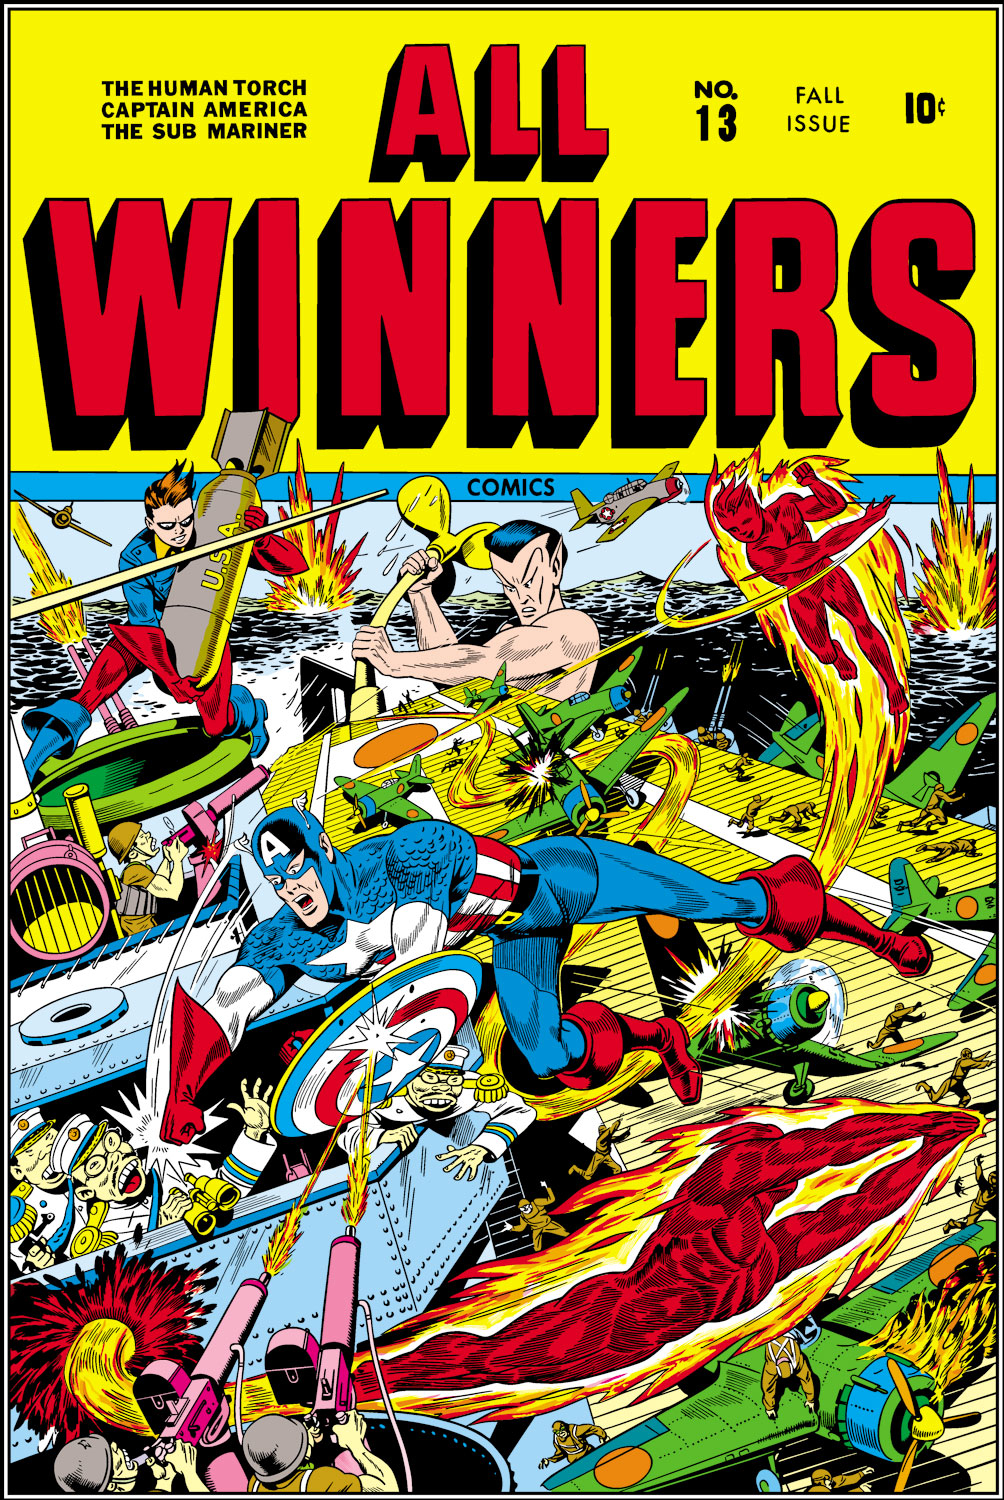 All-Winners Comics (1941) #13